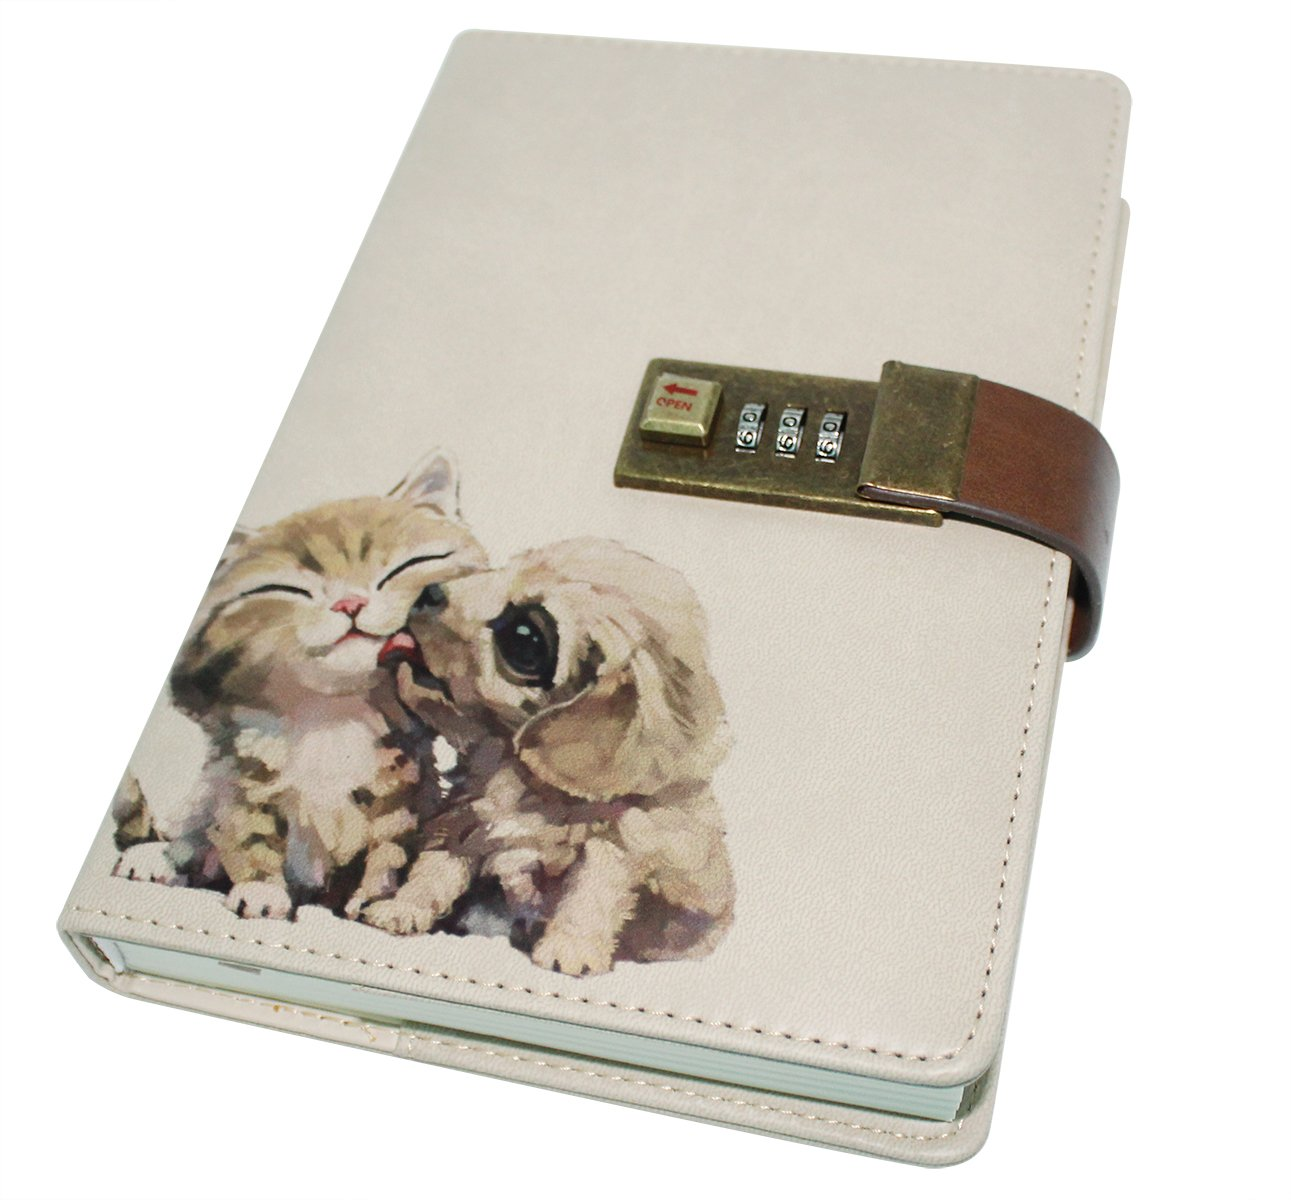 CC-US PU Leather Notebook with Combination Lock Pen Holder Diary Journal Sketchbook Notepad Planner, B6 Size, 224 Pages